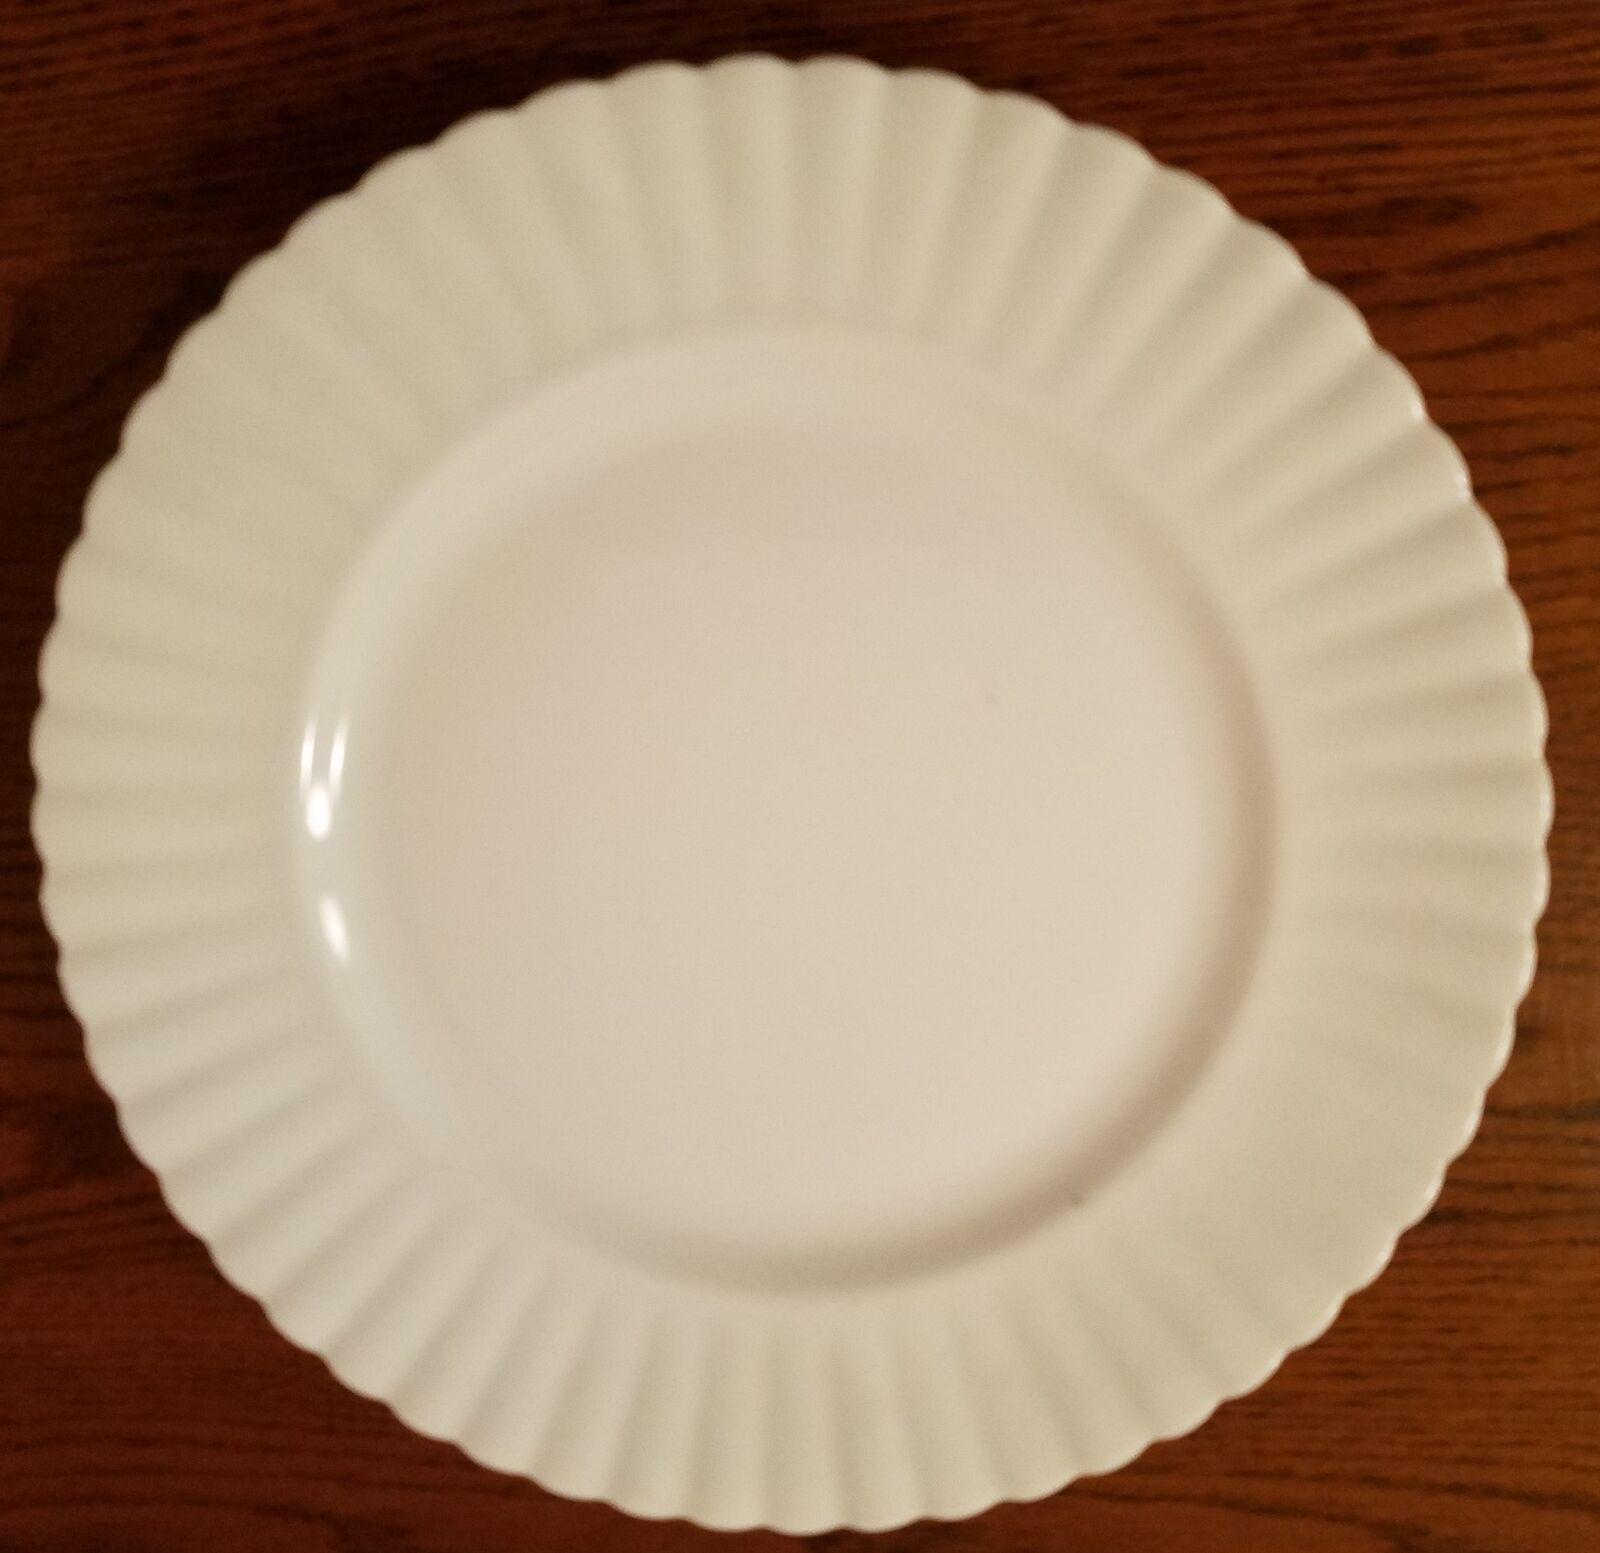 "Beautiful Set of 7 Royal Albert Reverie 10 1 2"" Dinner Plates - FREE SHIPPING"